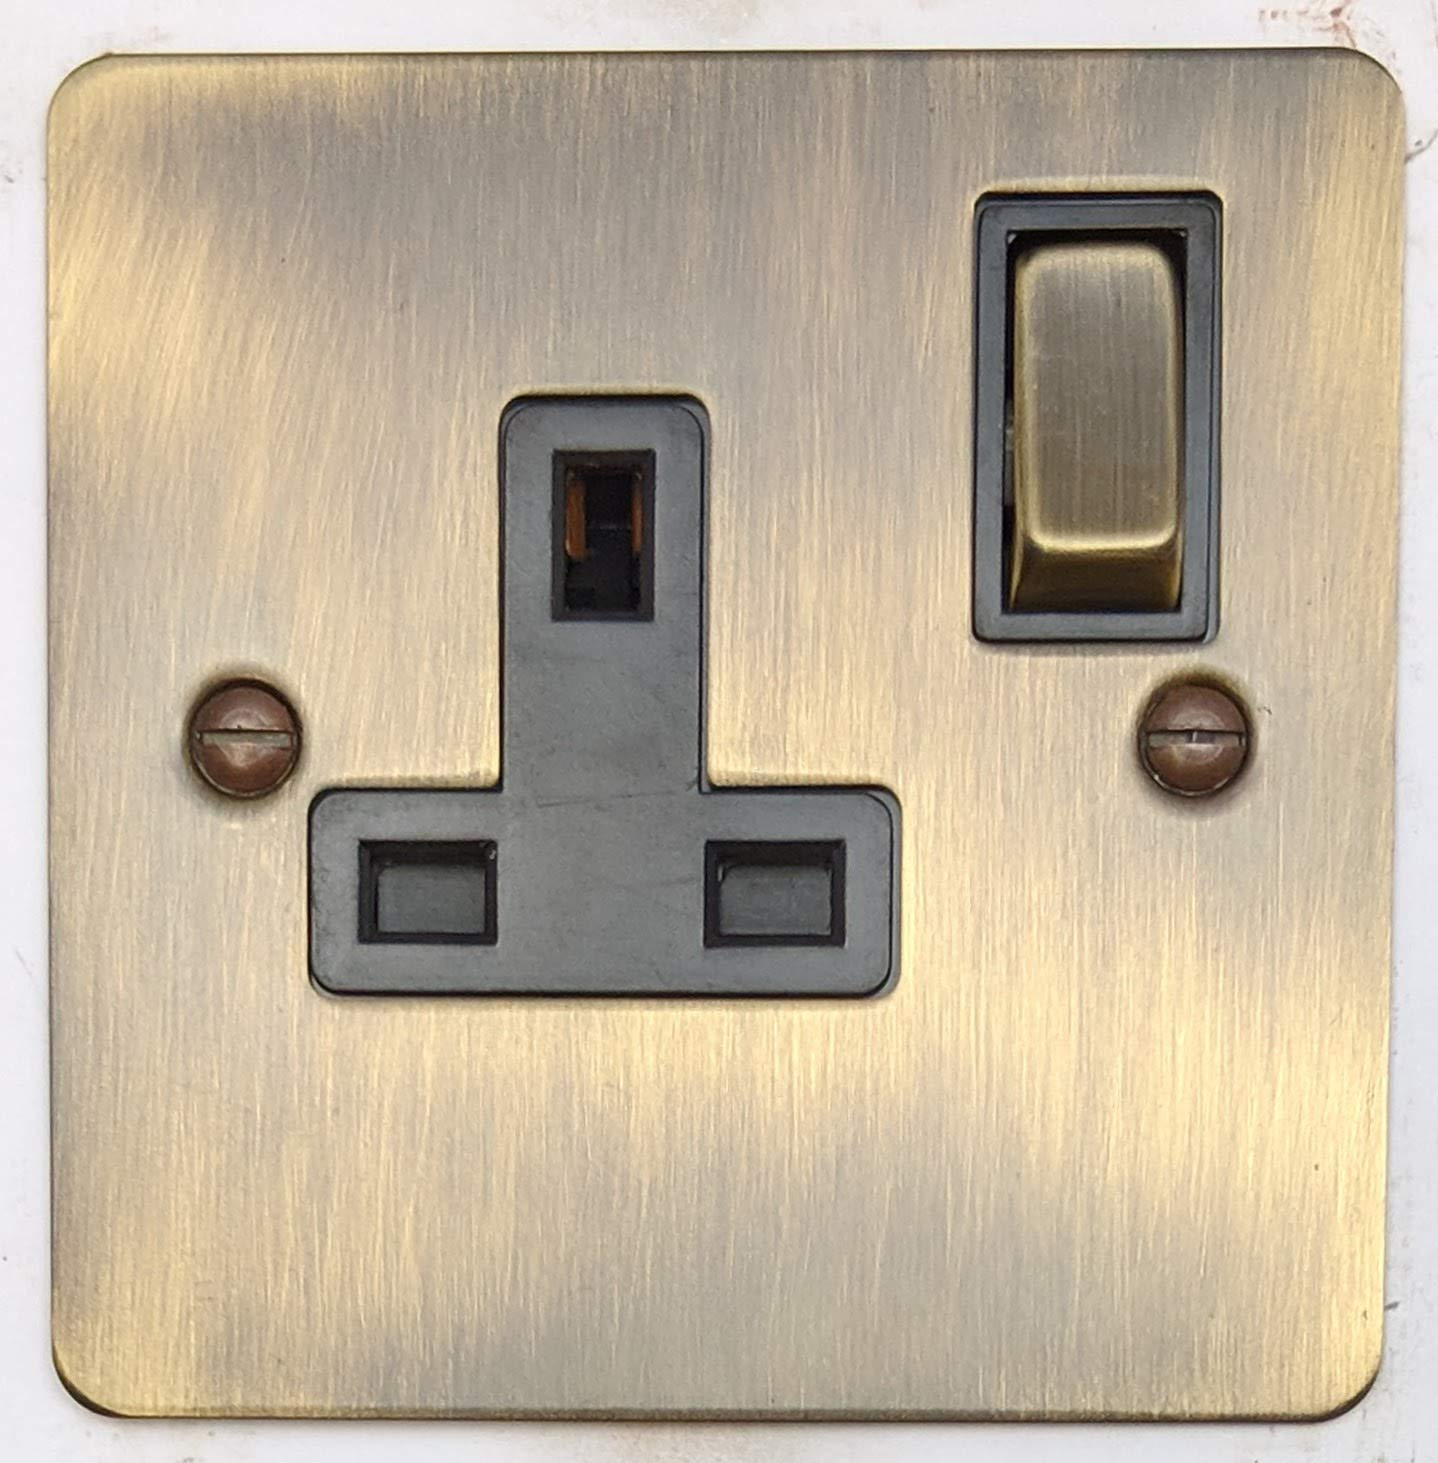 G&H FAB309 Flat Plate Antique Bronze 1 Gang Single 13A Switched Plug Socket G&H Brassware